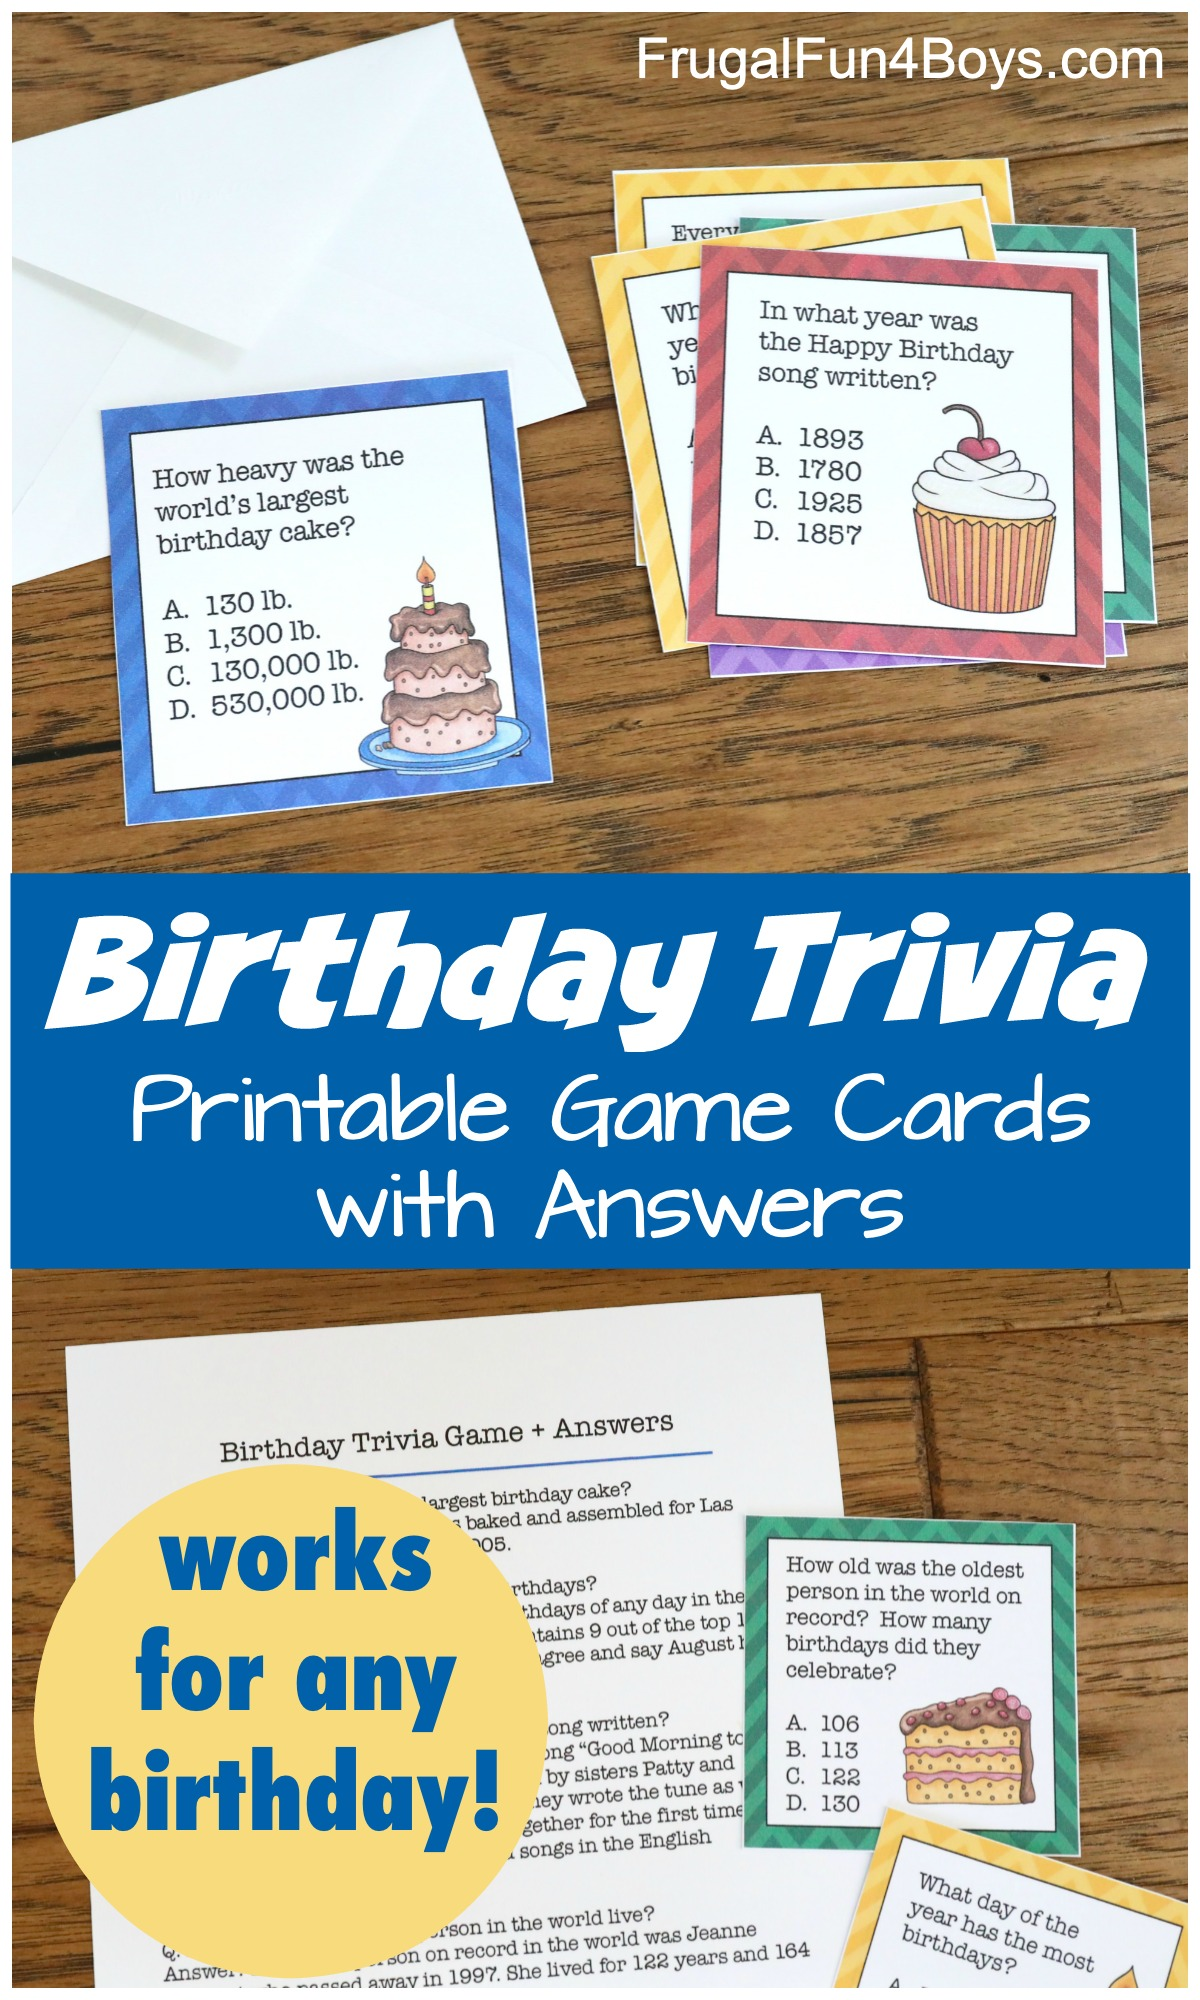 Printable Birthday Trivia Game